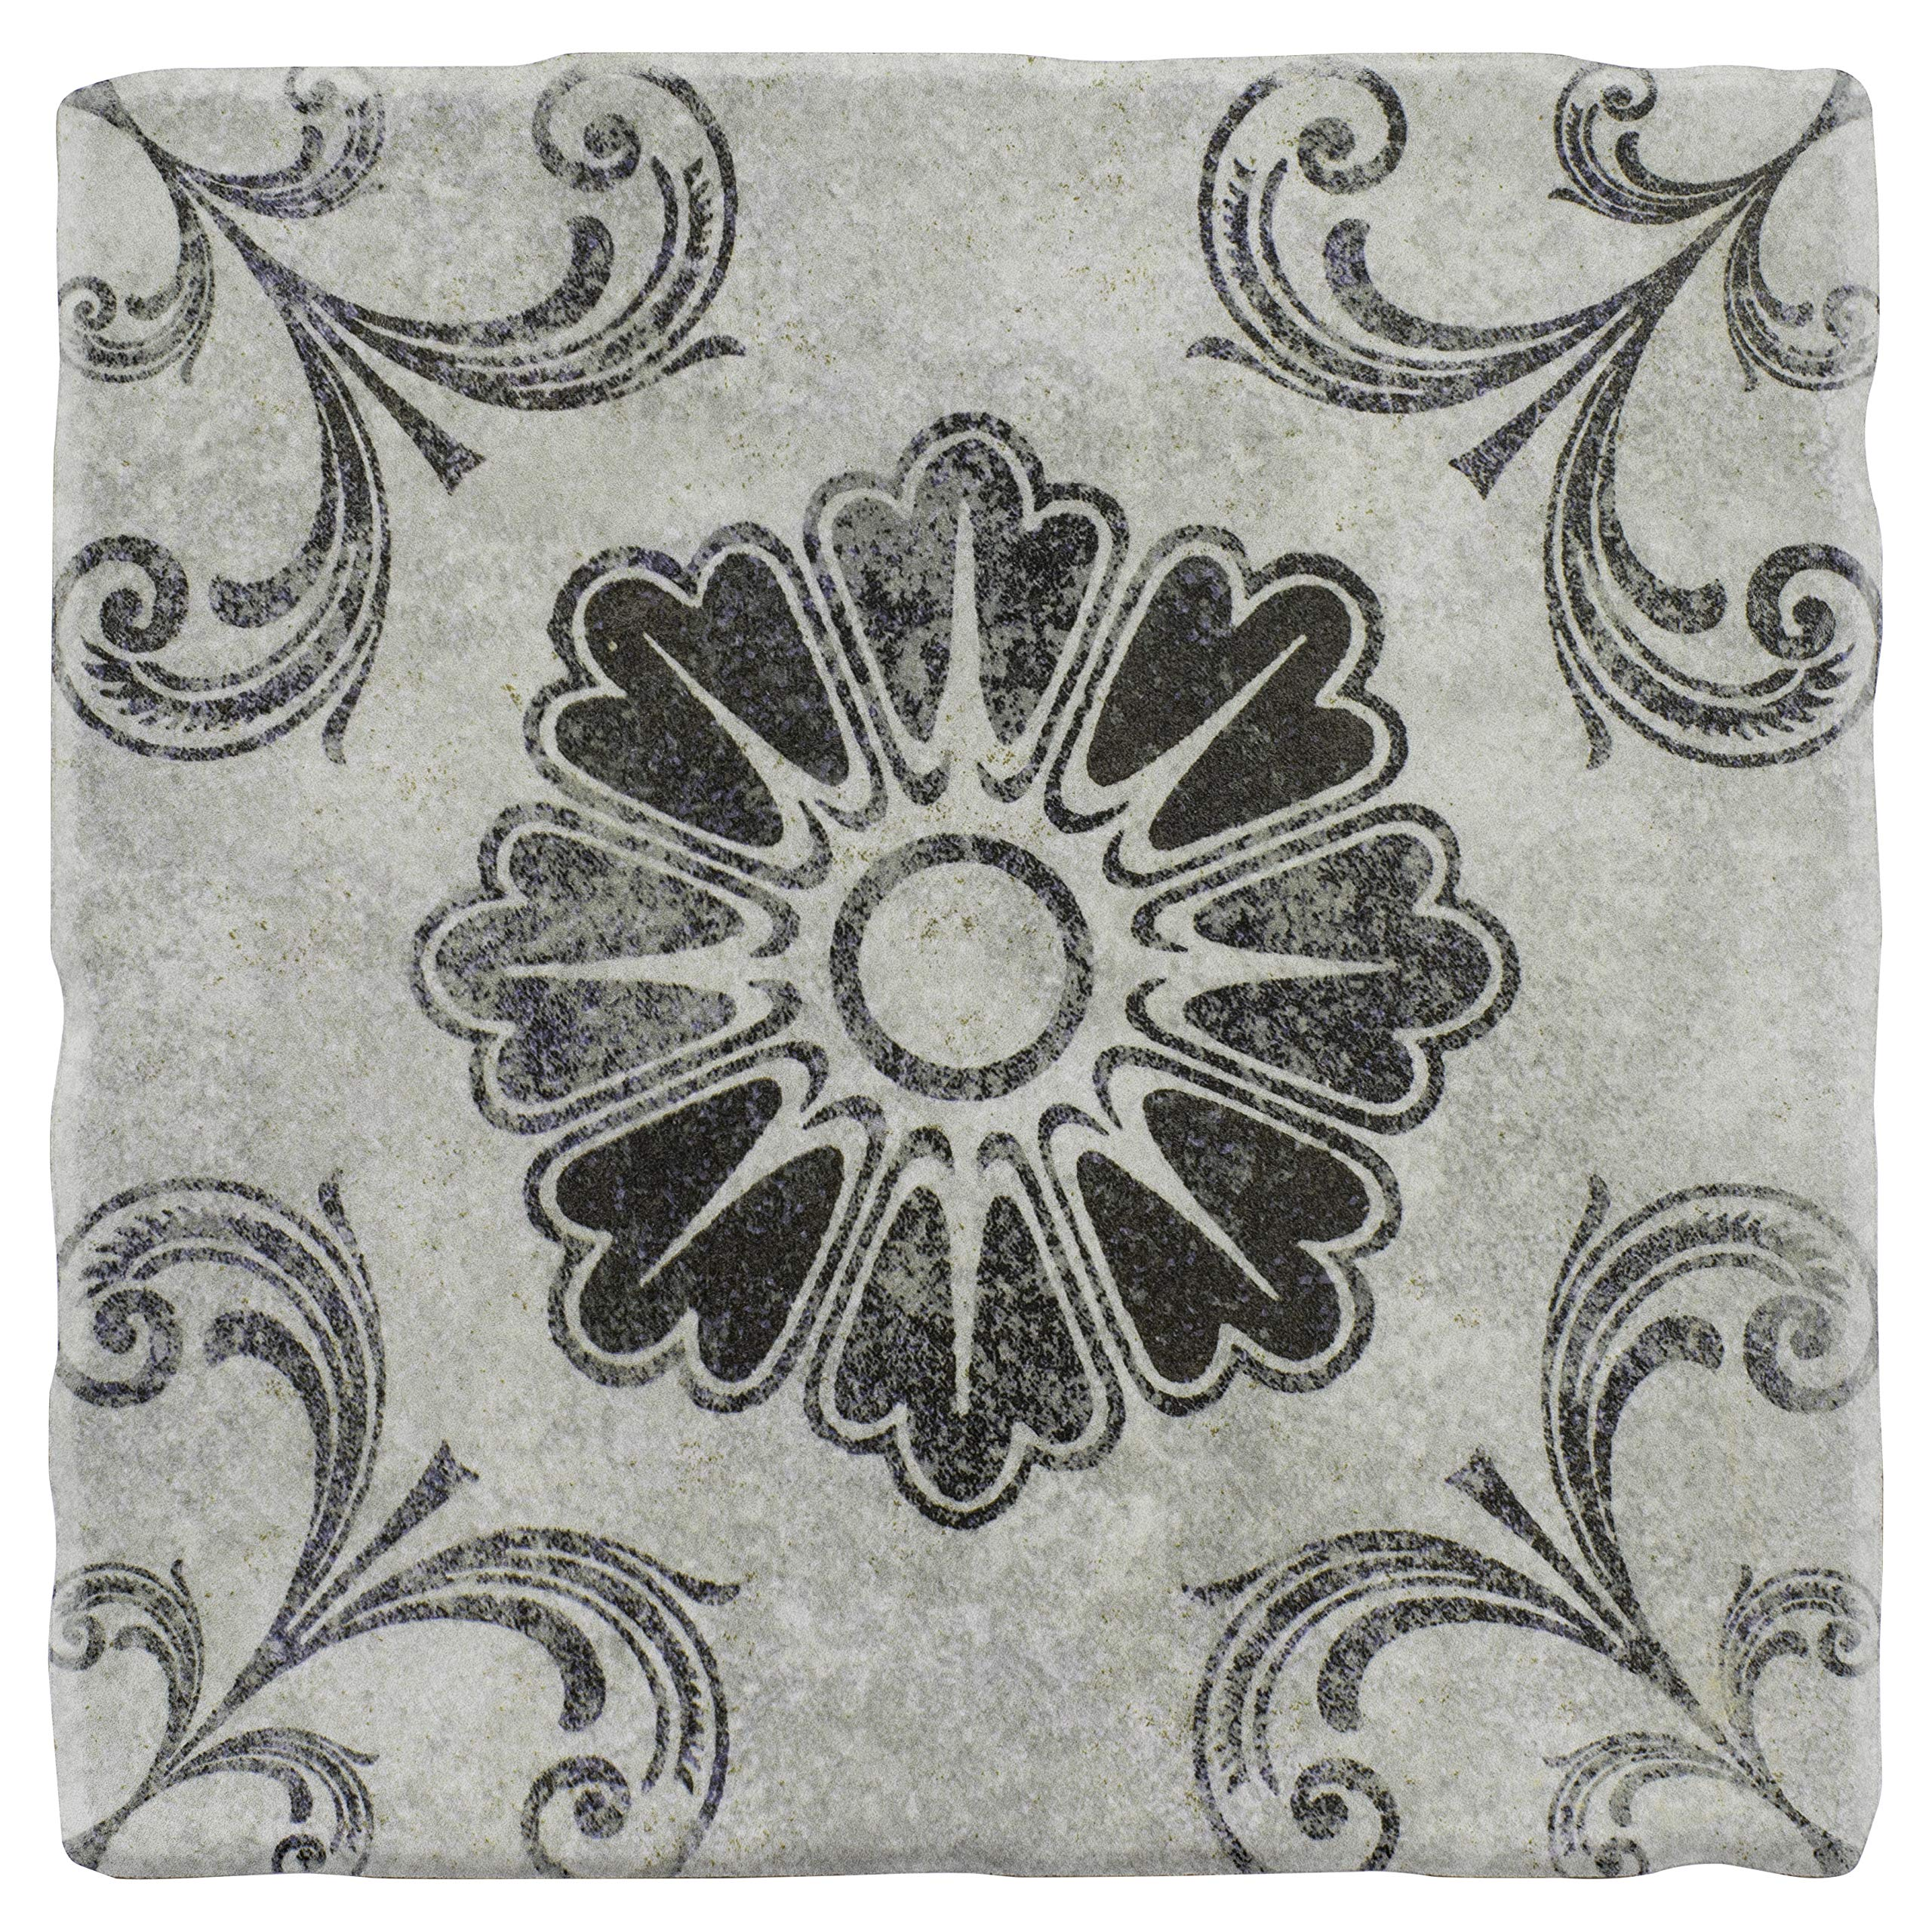 SomerTile FEB8CCD3 Cana Cendra Ceramic Floor and Wall Tile, 7.75'' x 7.75'', Grey/Blue/Brown